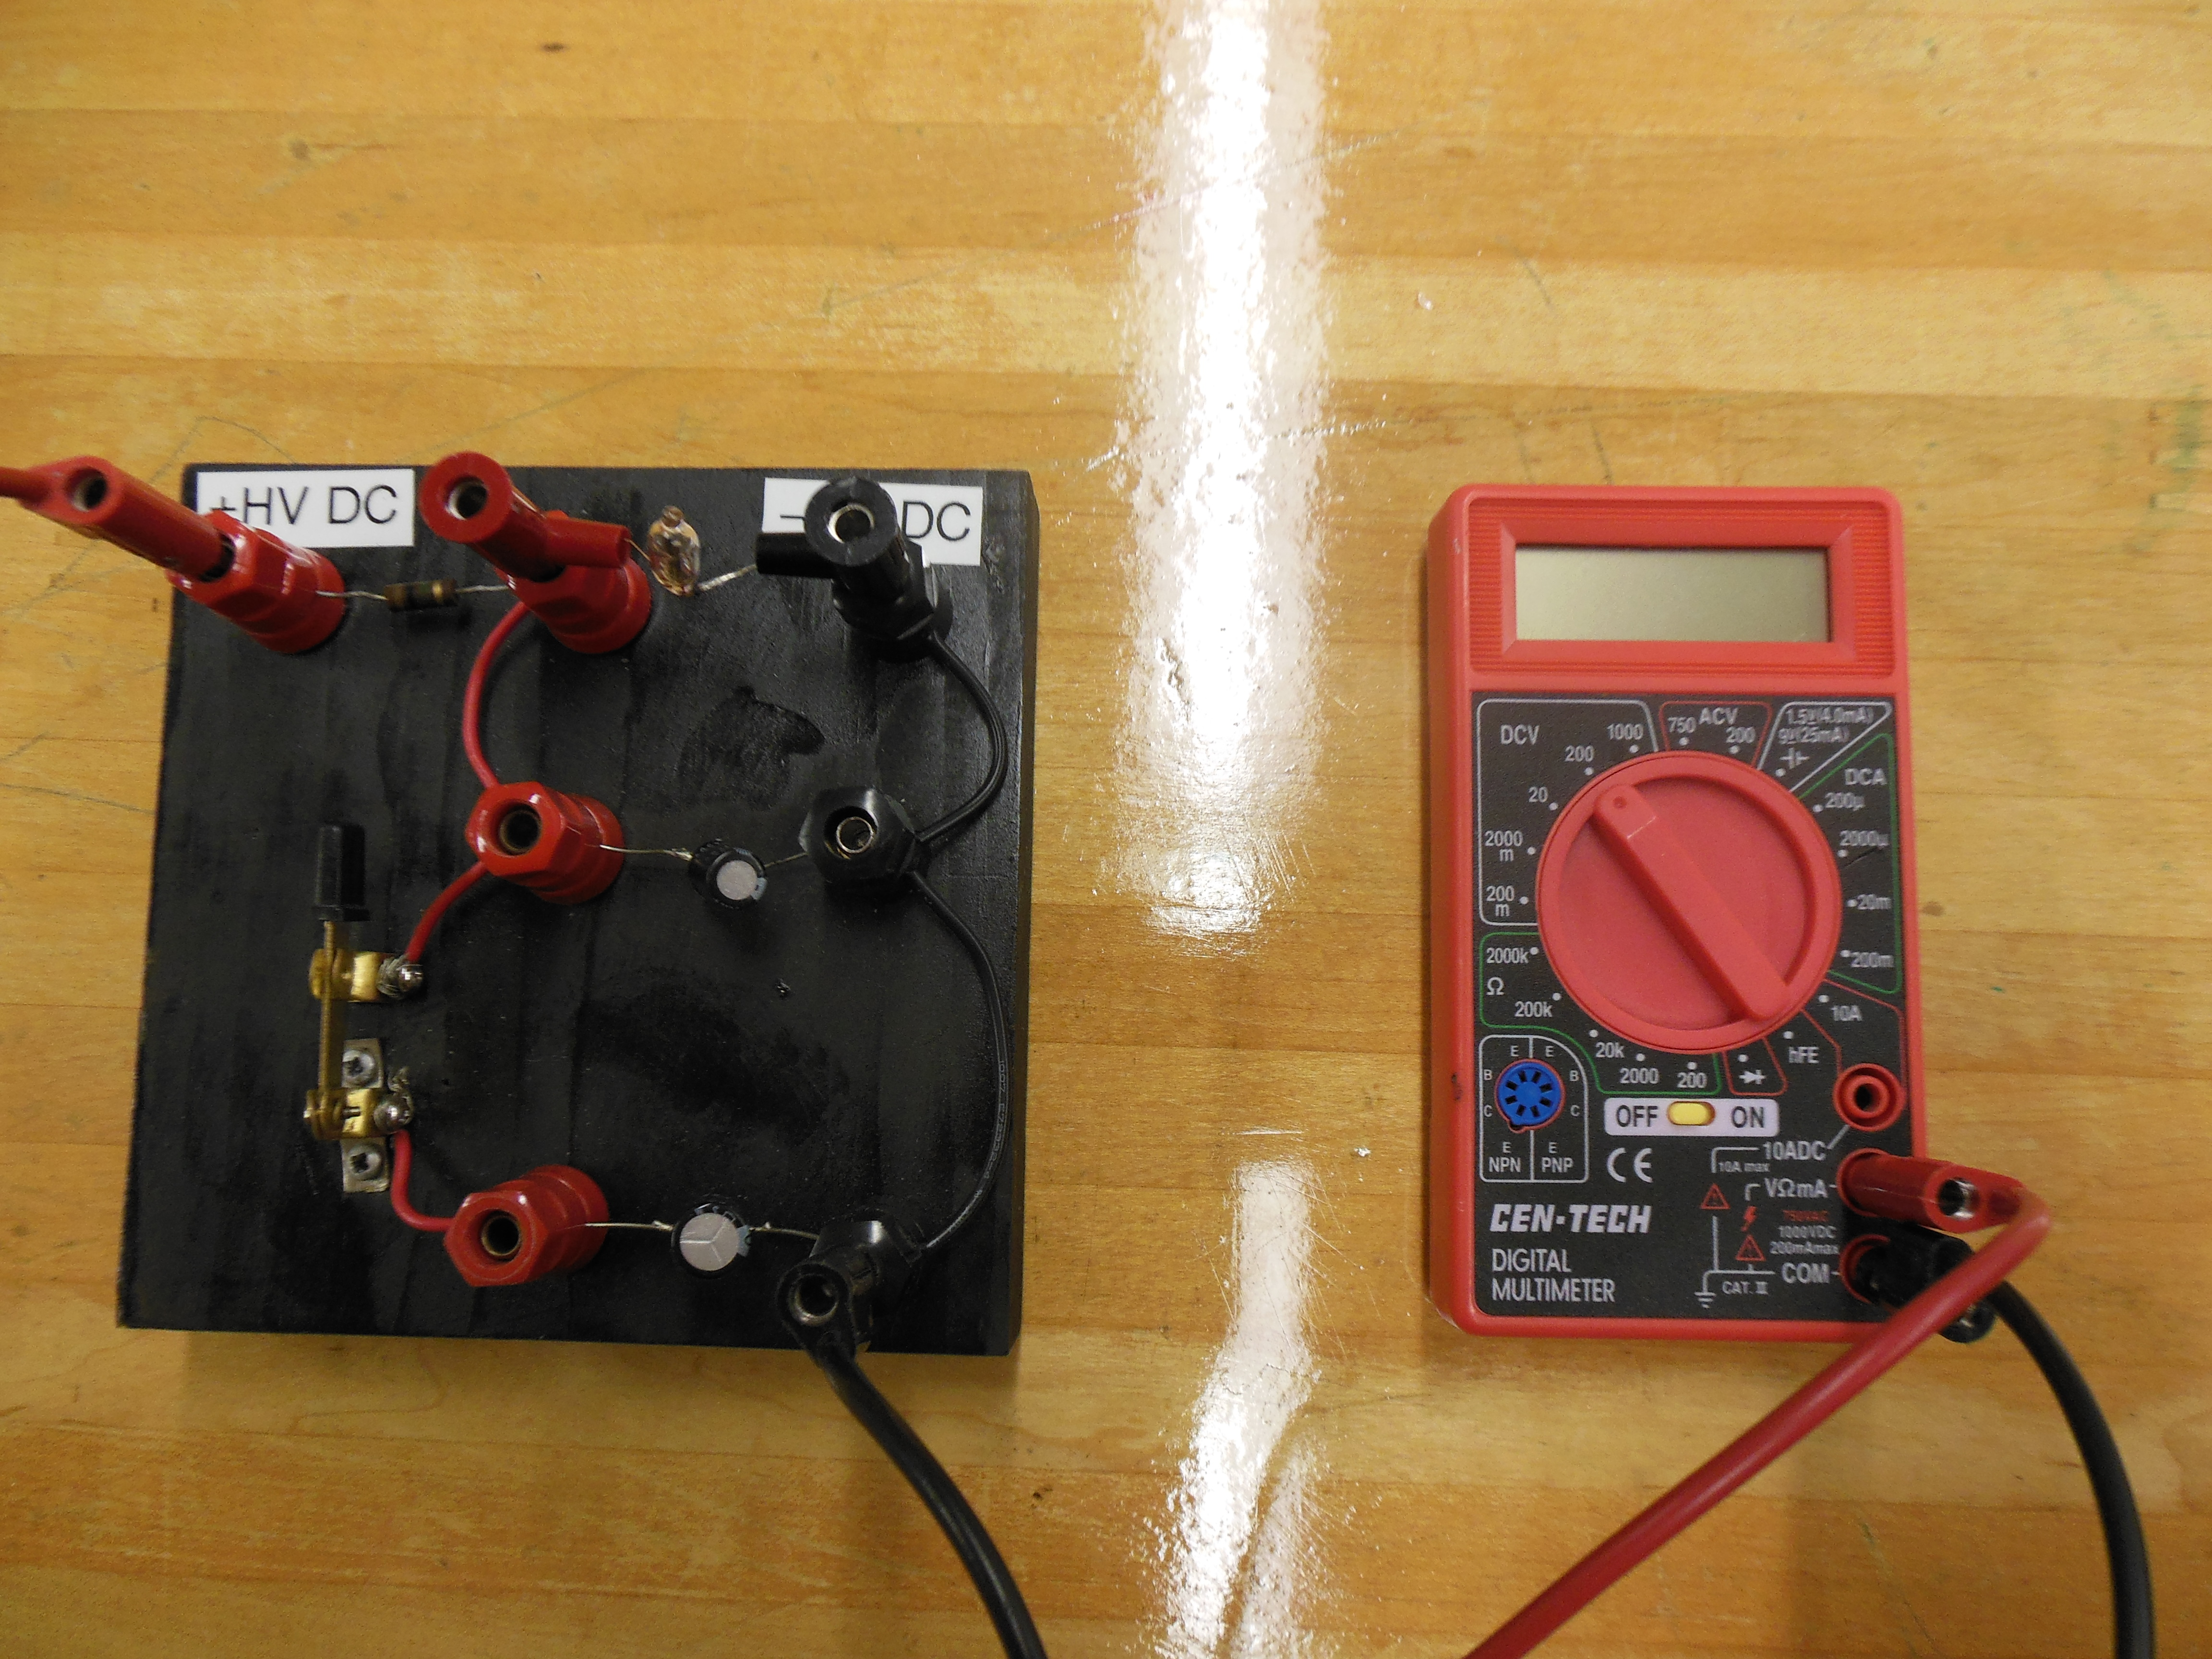 Flashing Neon Bulb Rc Circuit Physics Lecture Demo Simplest Lamp Flasher Electronic Circuits And Diagram Note For Instructors This May Be Easily Customized By Replacing The Capacitors With Larger Or Smaller Ones To Increase Decrease Flash Interval